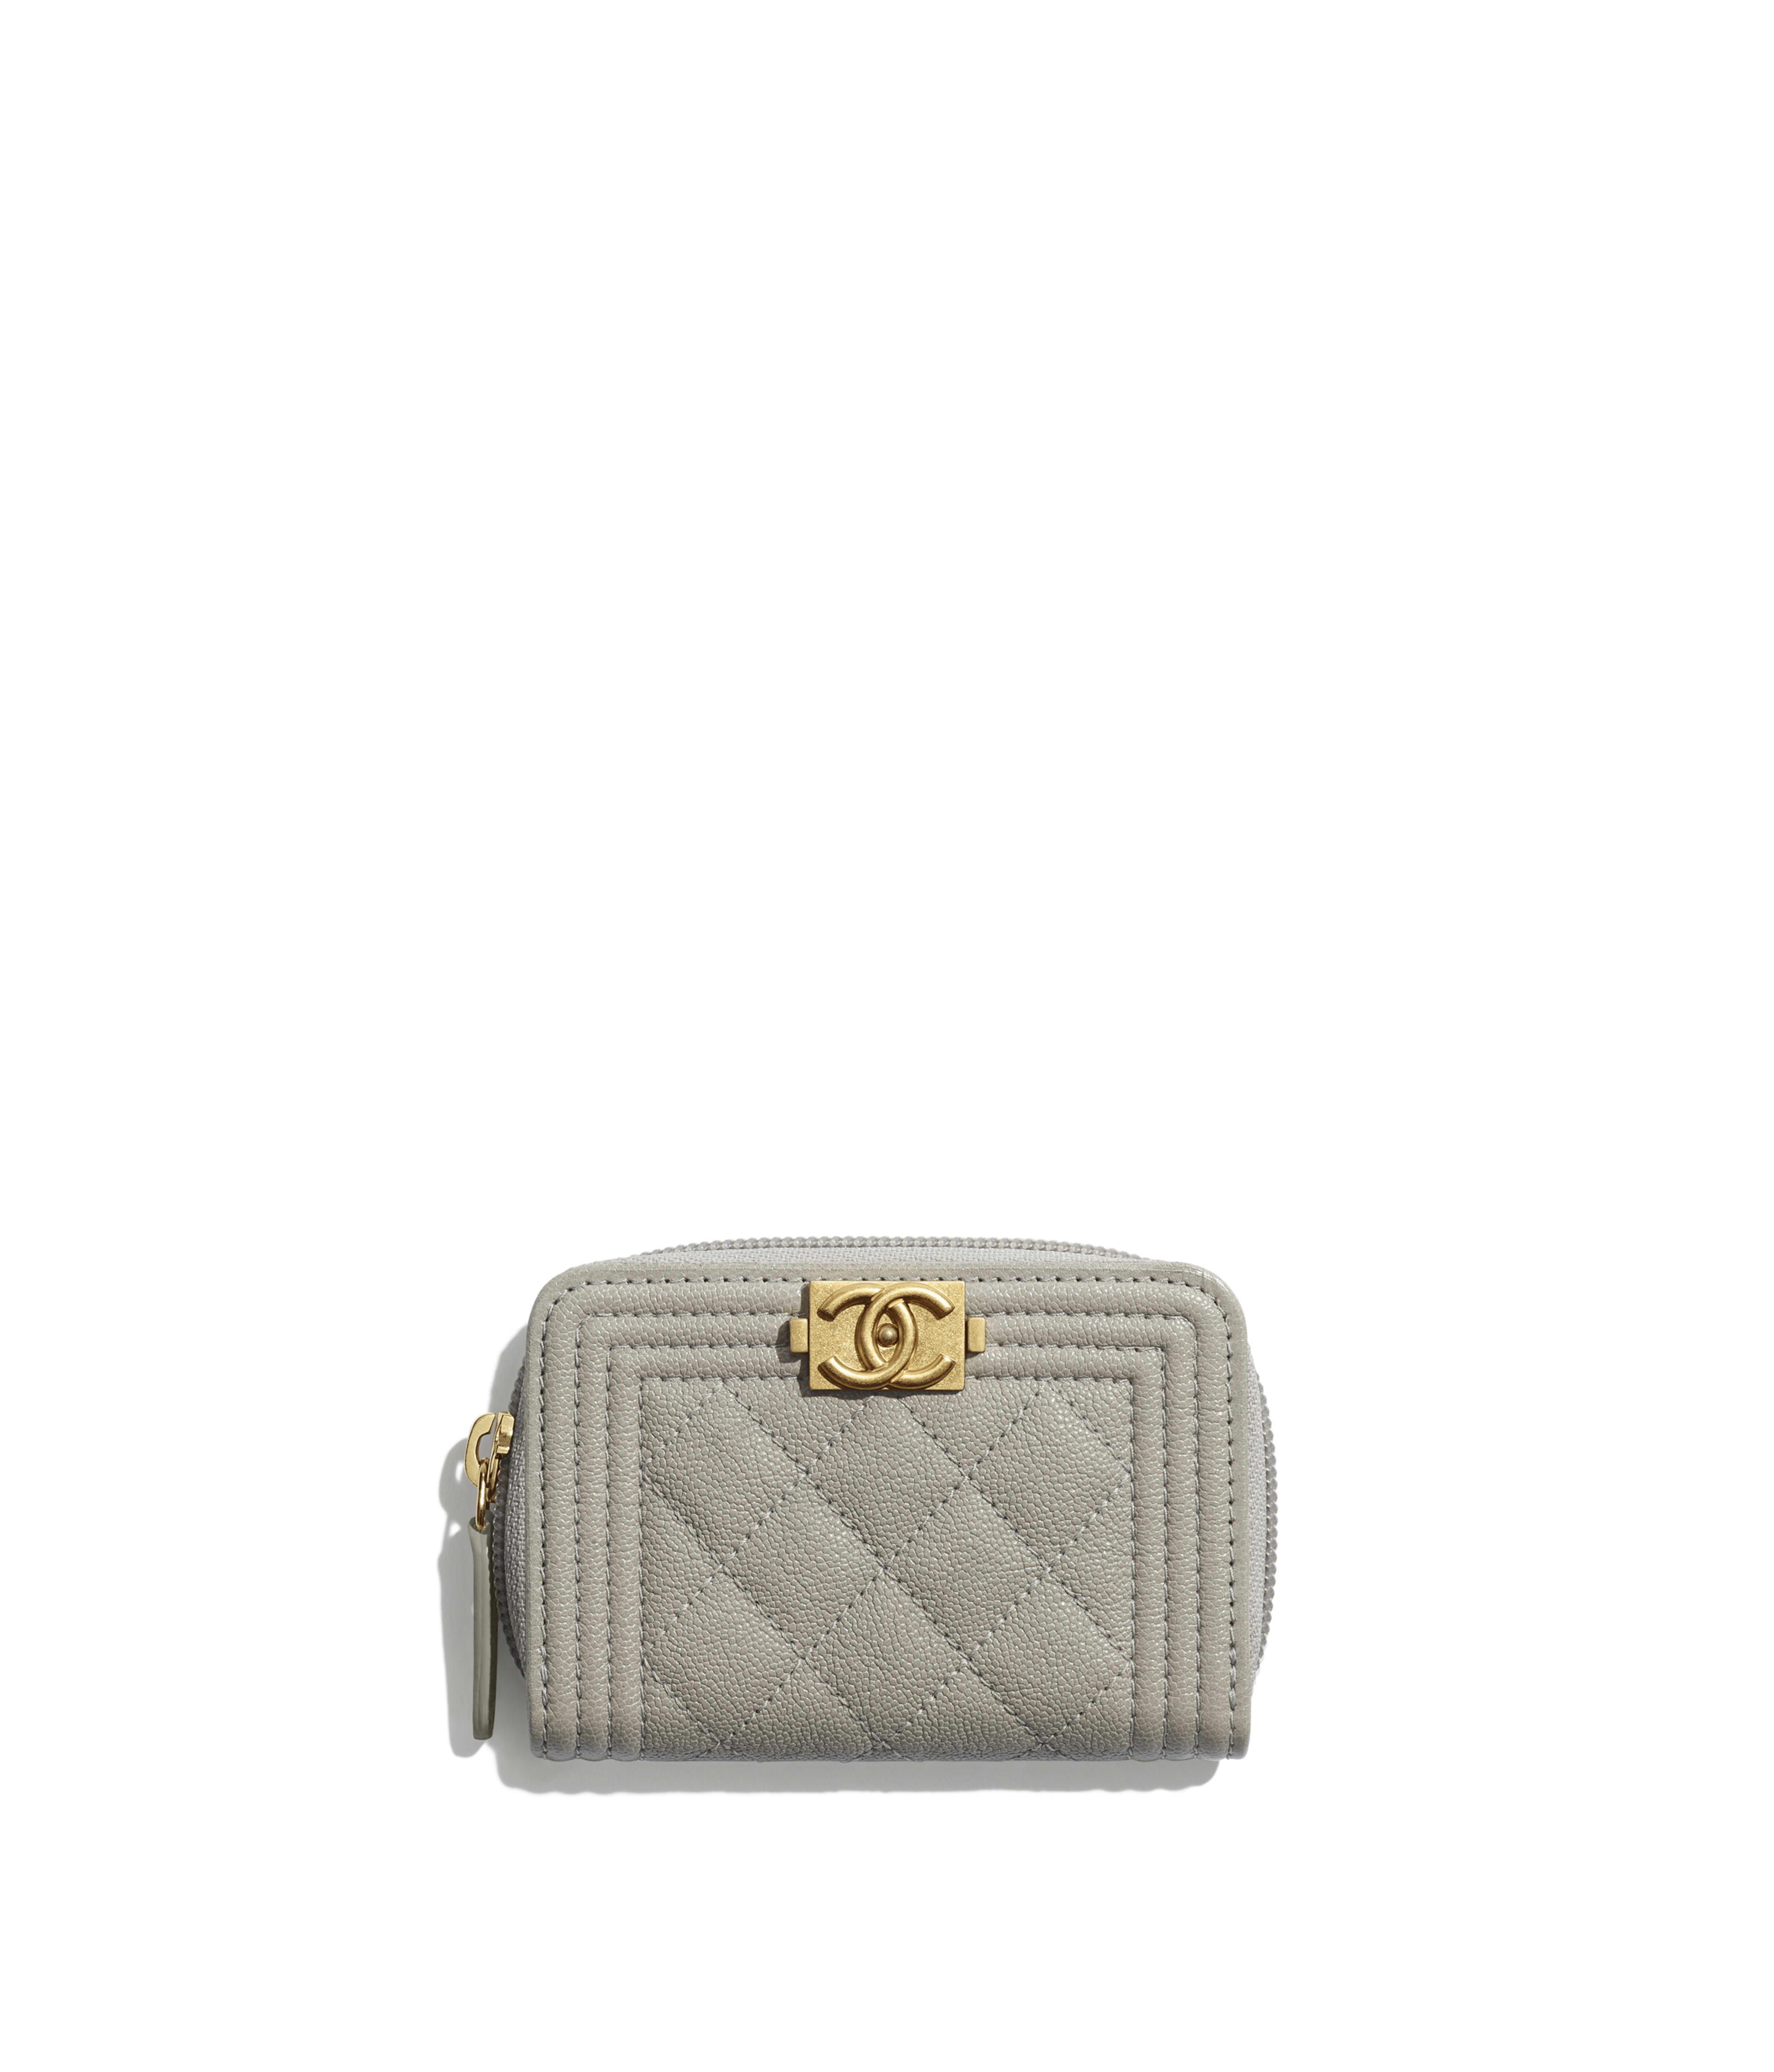 20b64a2071 Chanel Flap Coin Purse